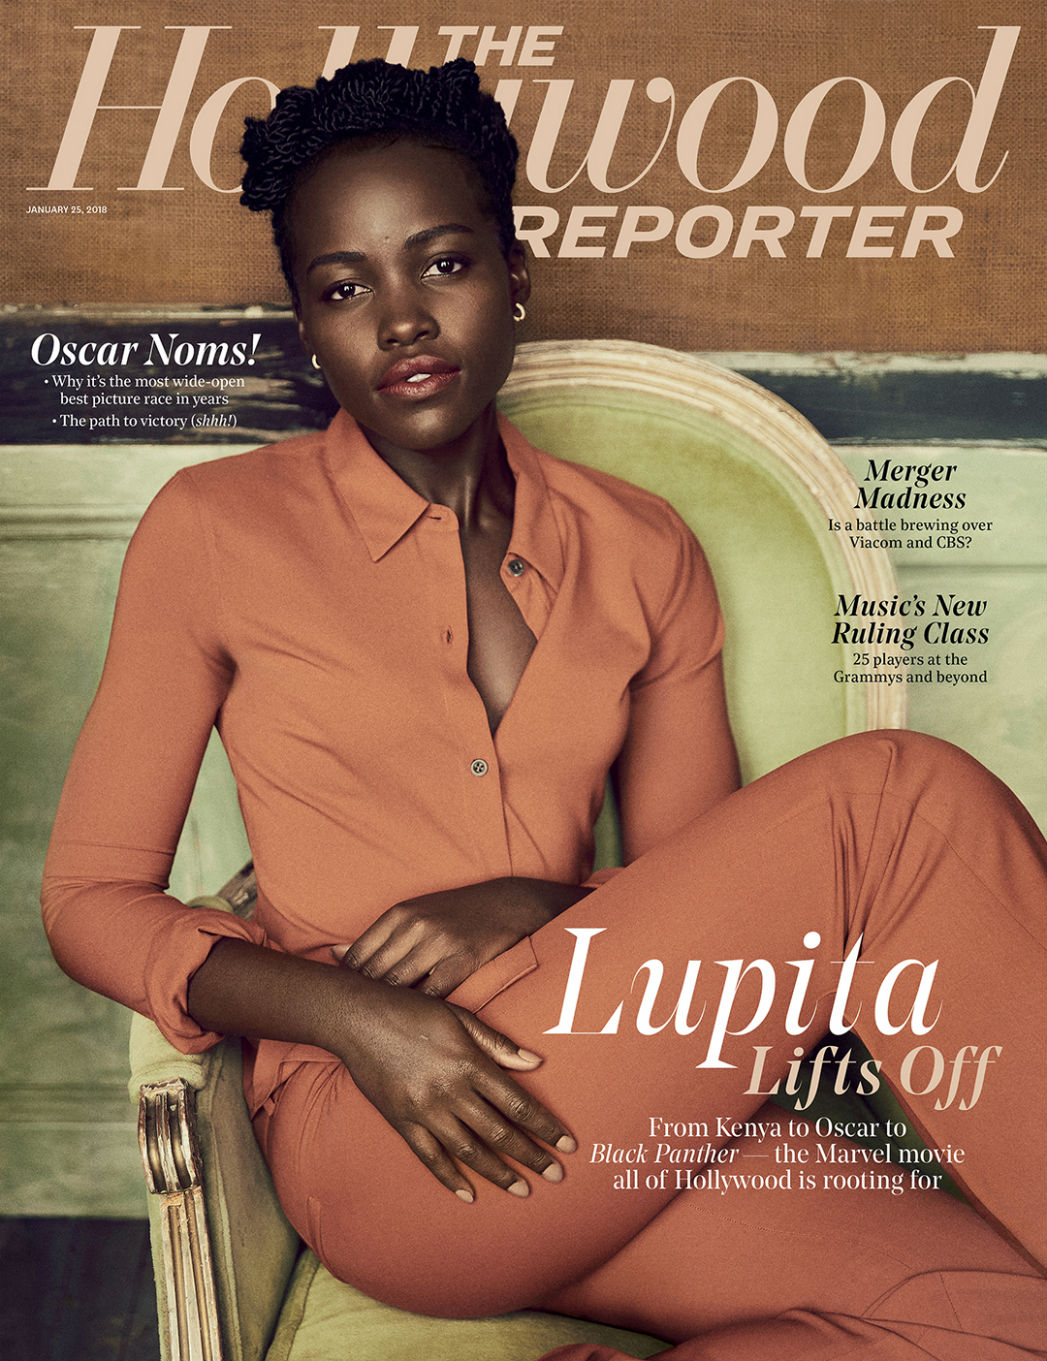 Celebrating Lupita Nyong'o: Marvel's 'Black Panther'